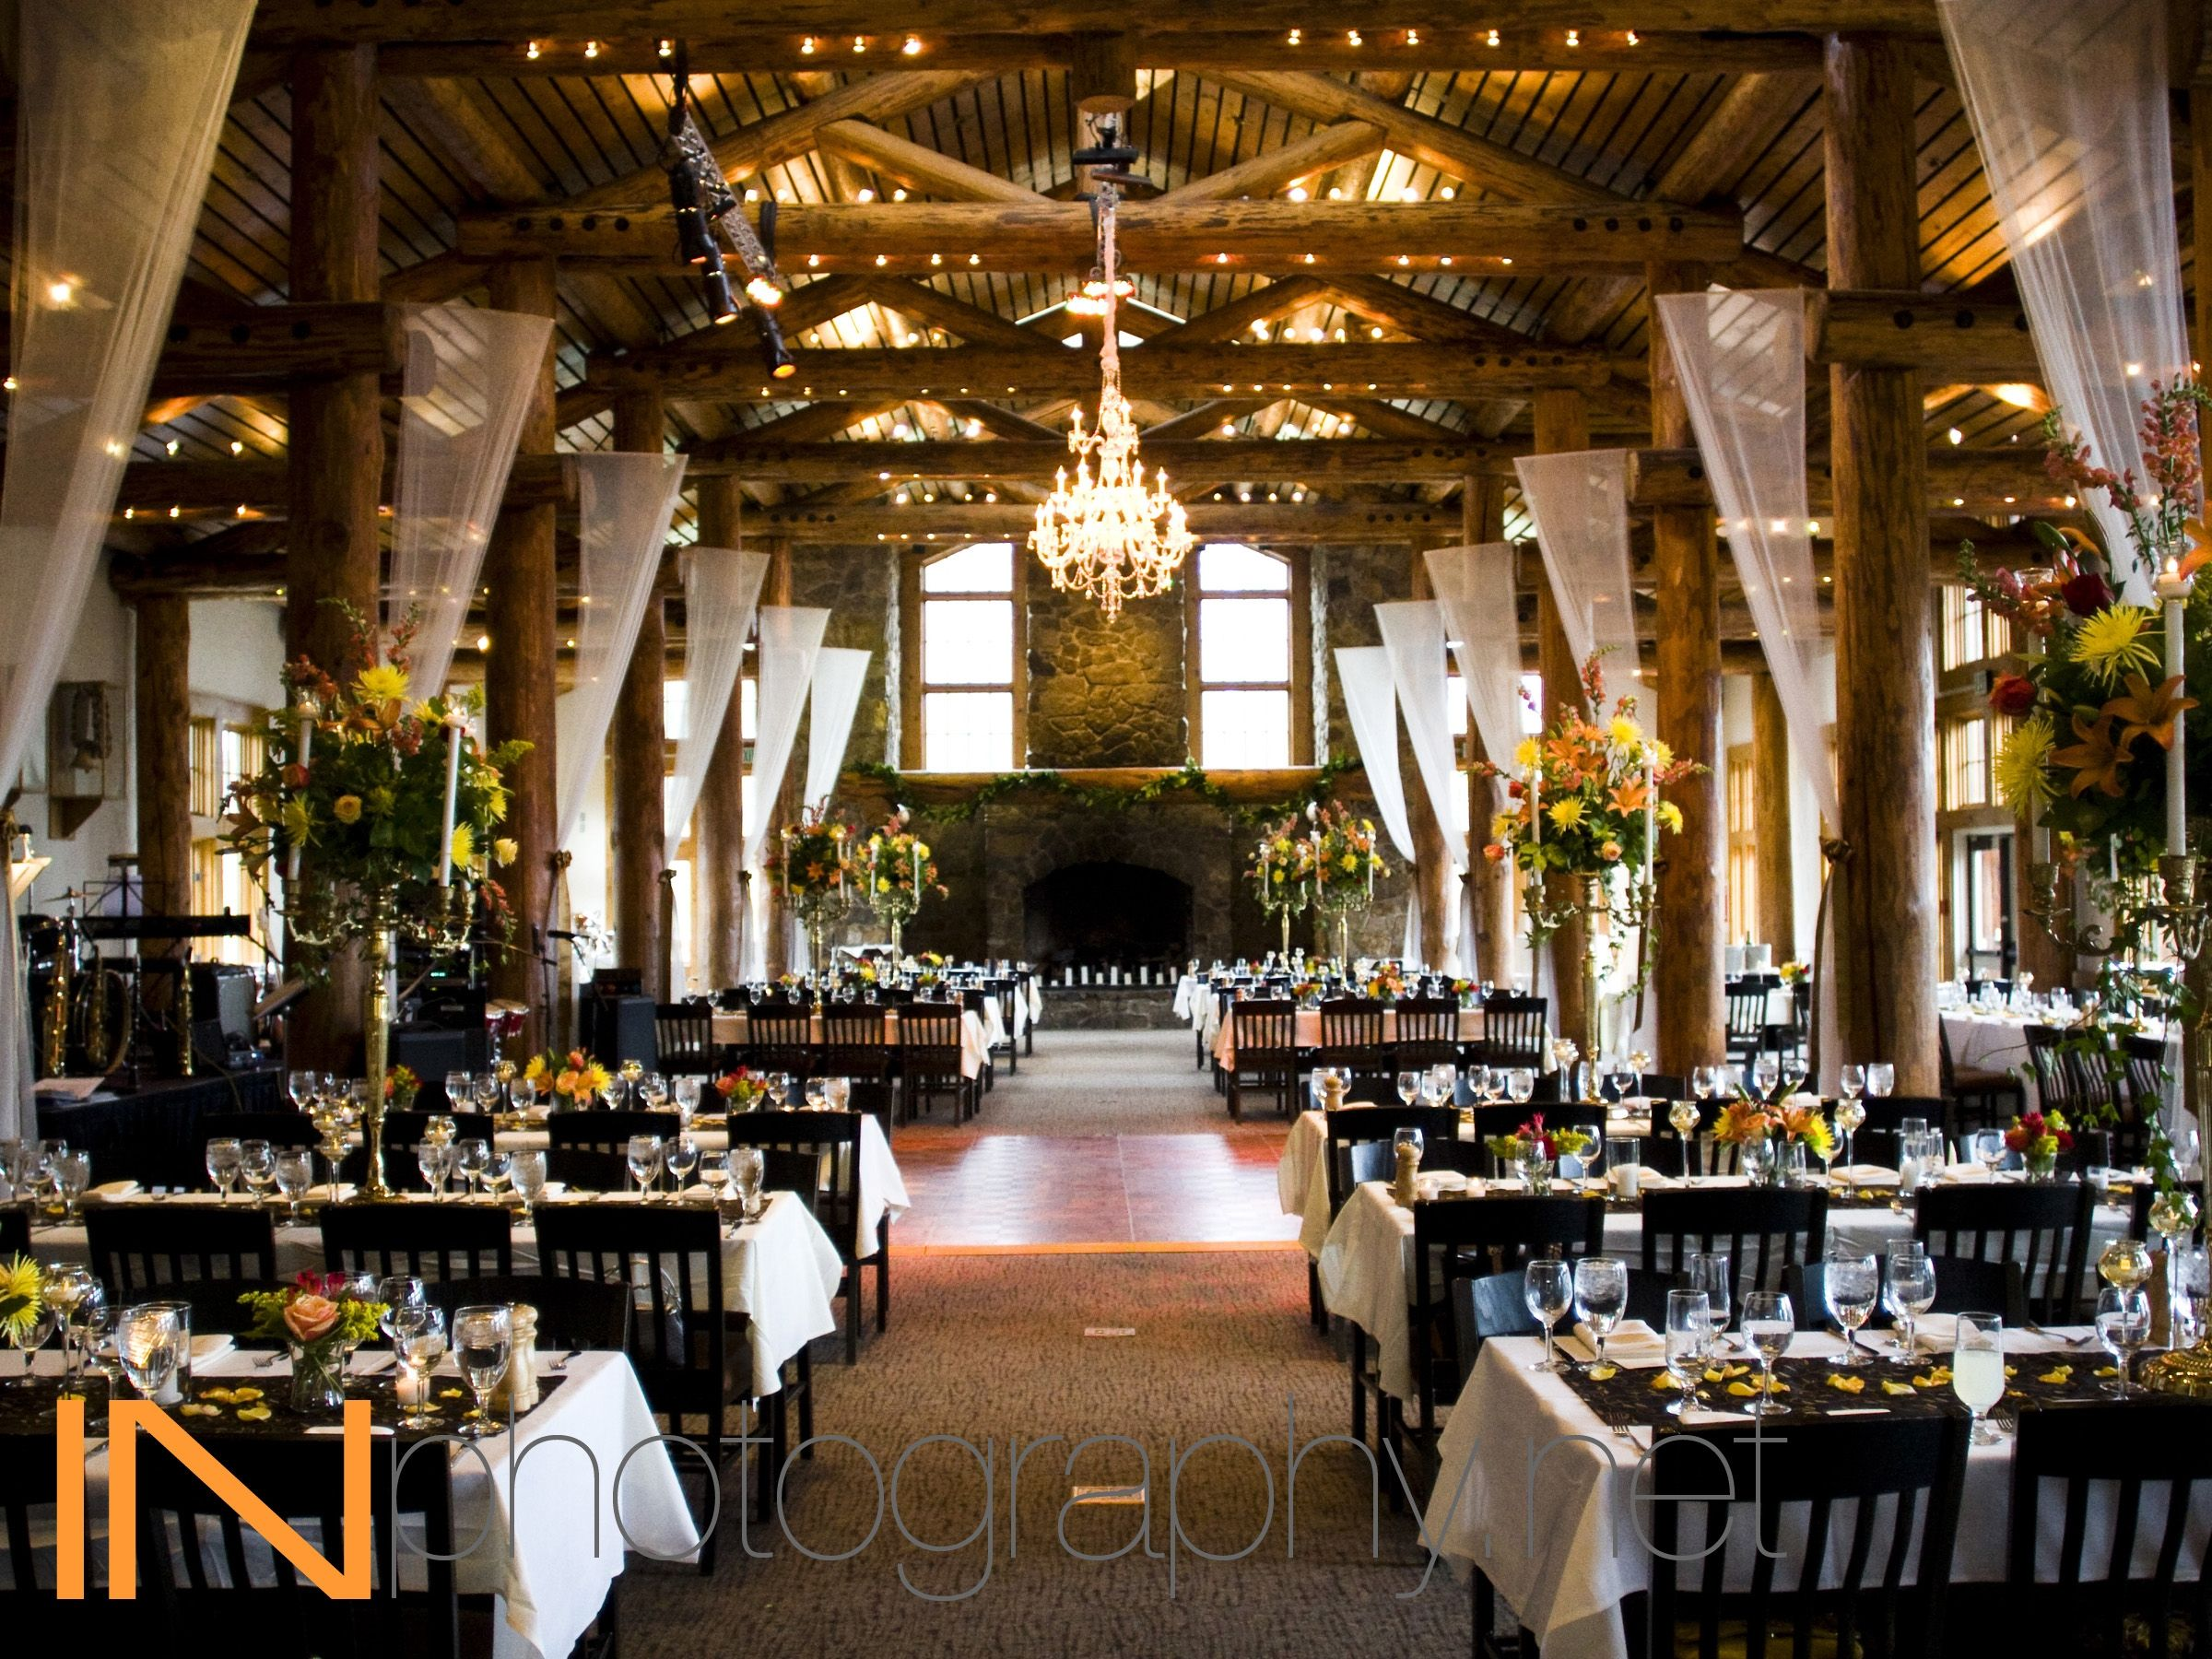 Dining room at timber ridge a wedding venue in keystone colorado dining room at timber ridge a wedding venue in keystone colorado photo courtesy junglespirit Image collections